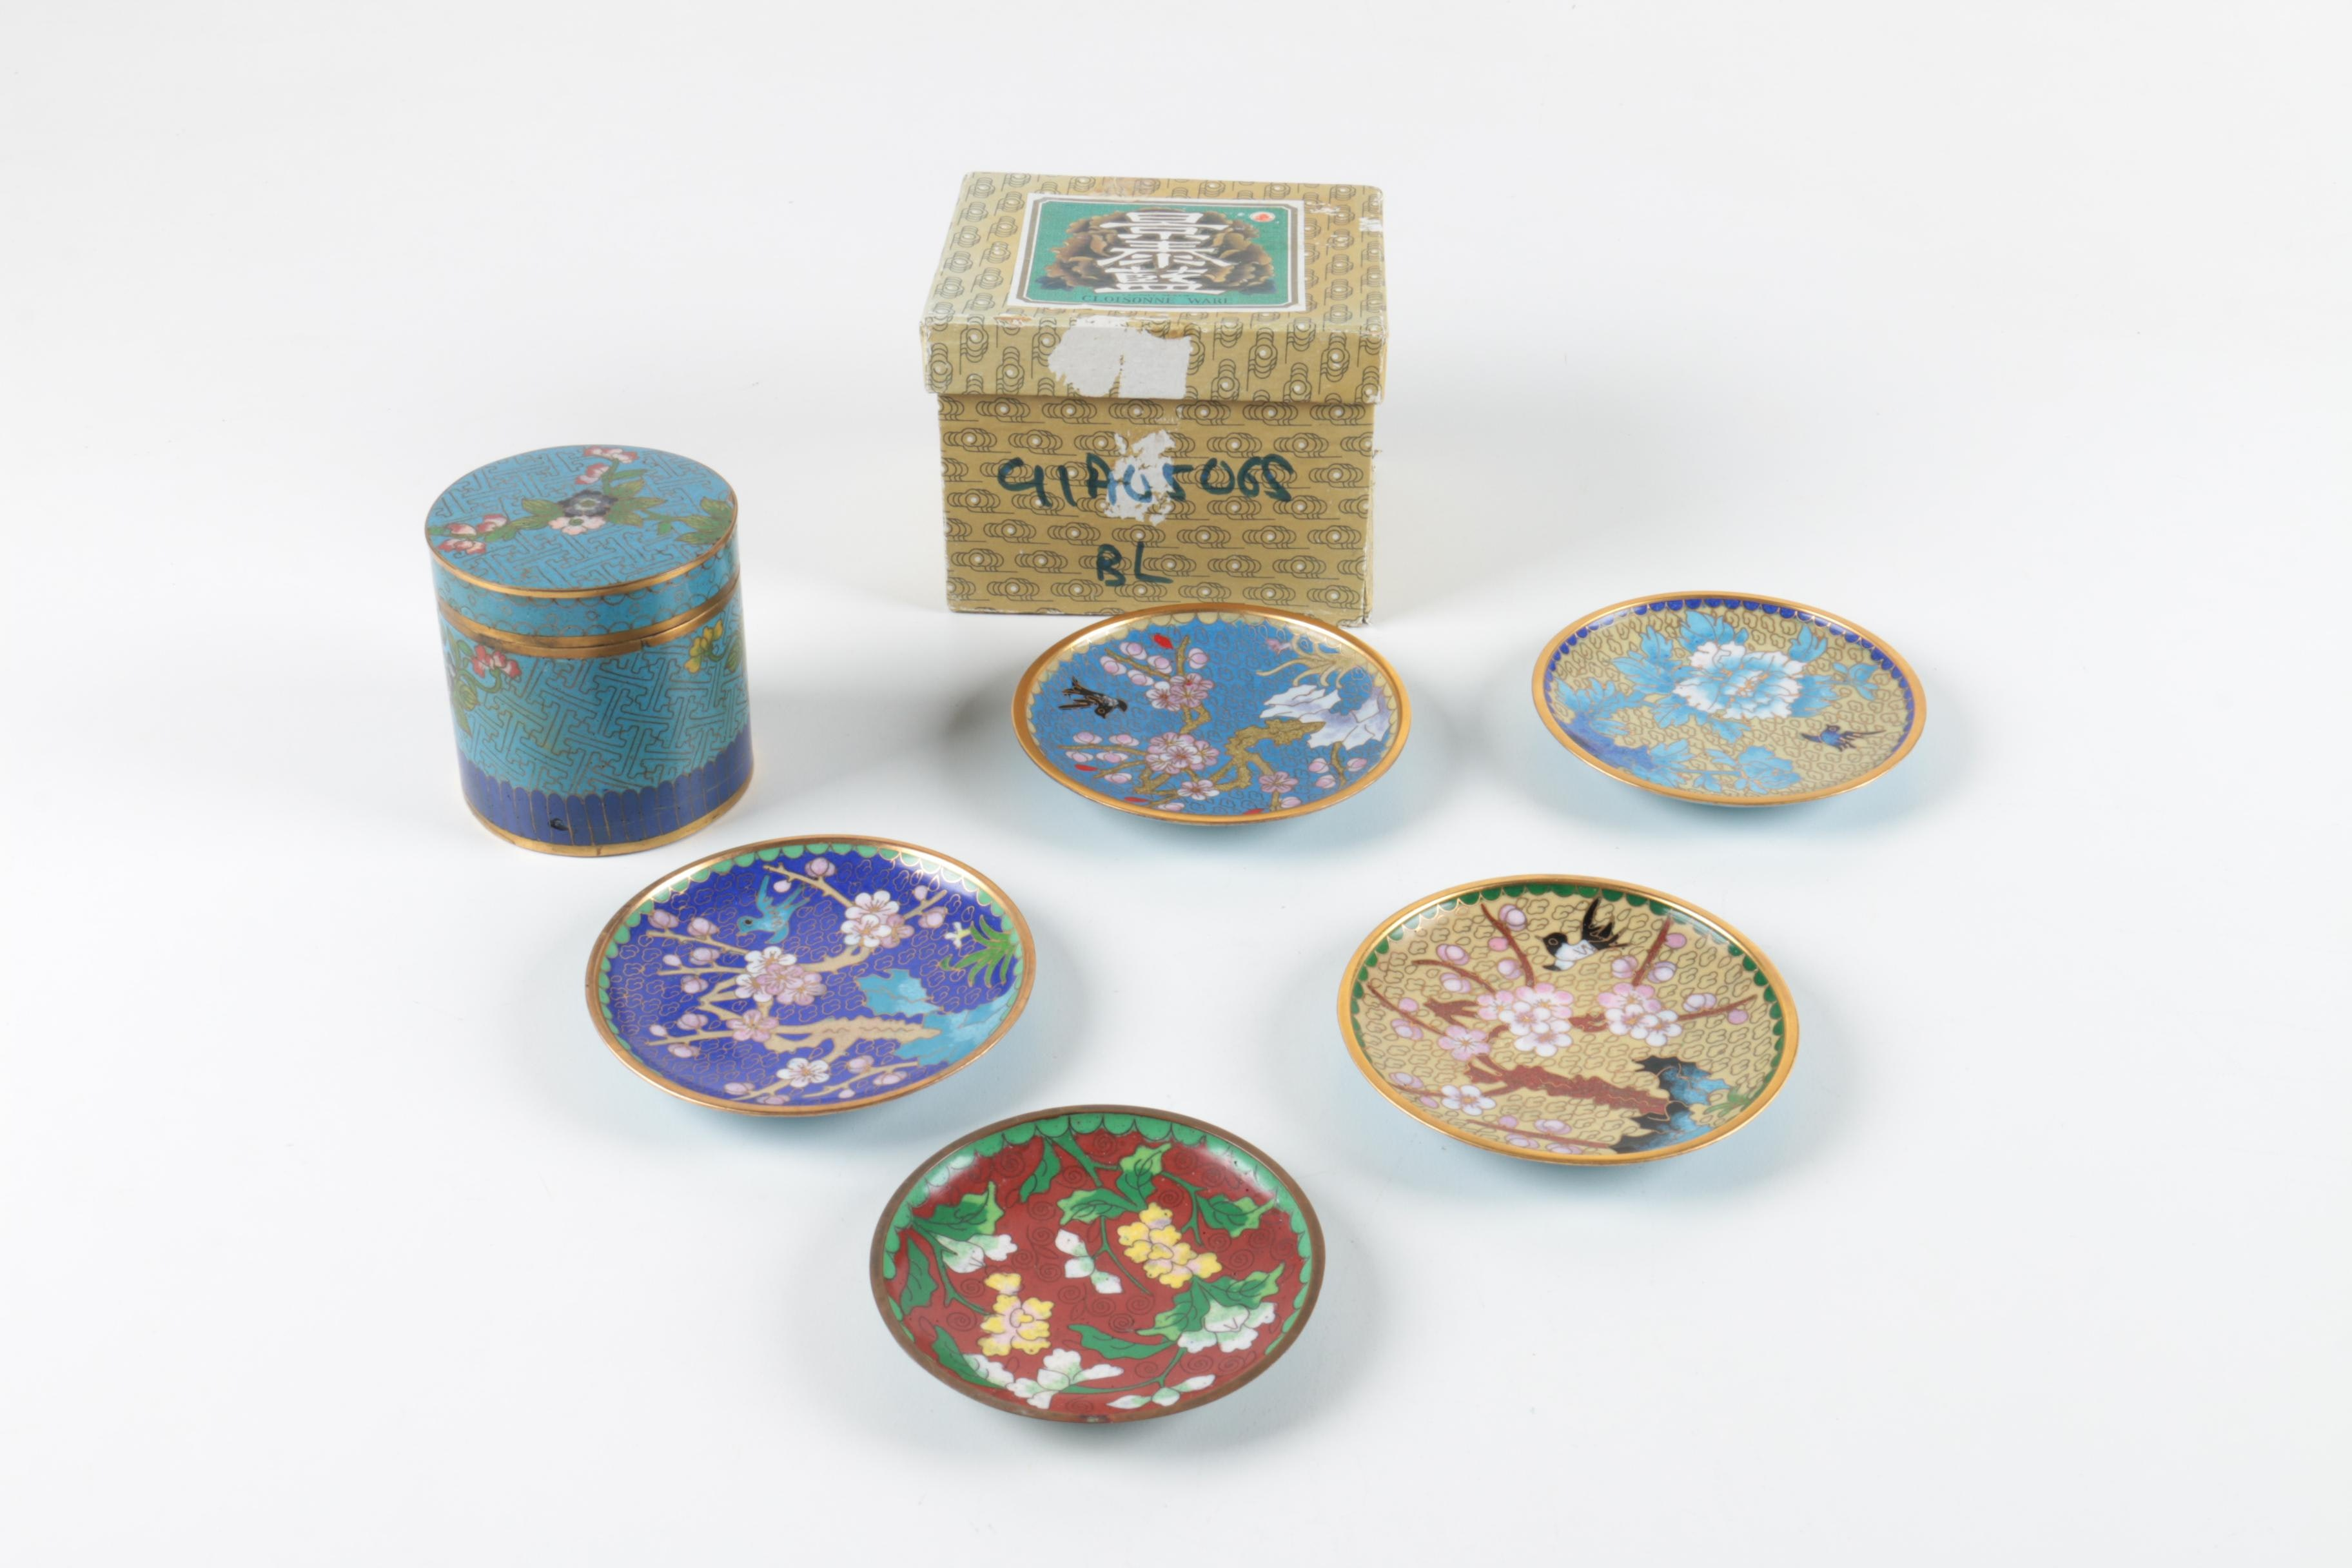 Cloisonné Style Trinket Vase and Chinese Decorative Plates